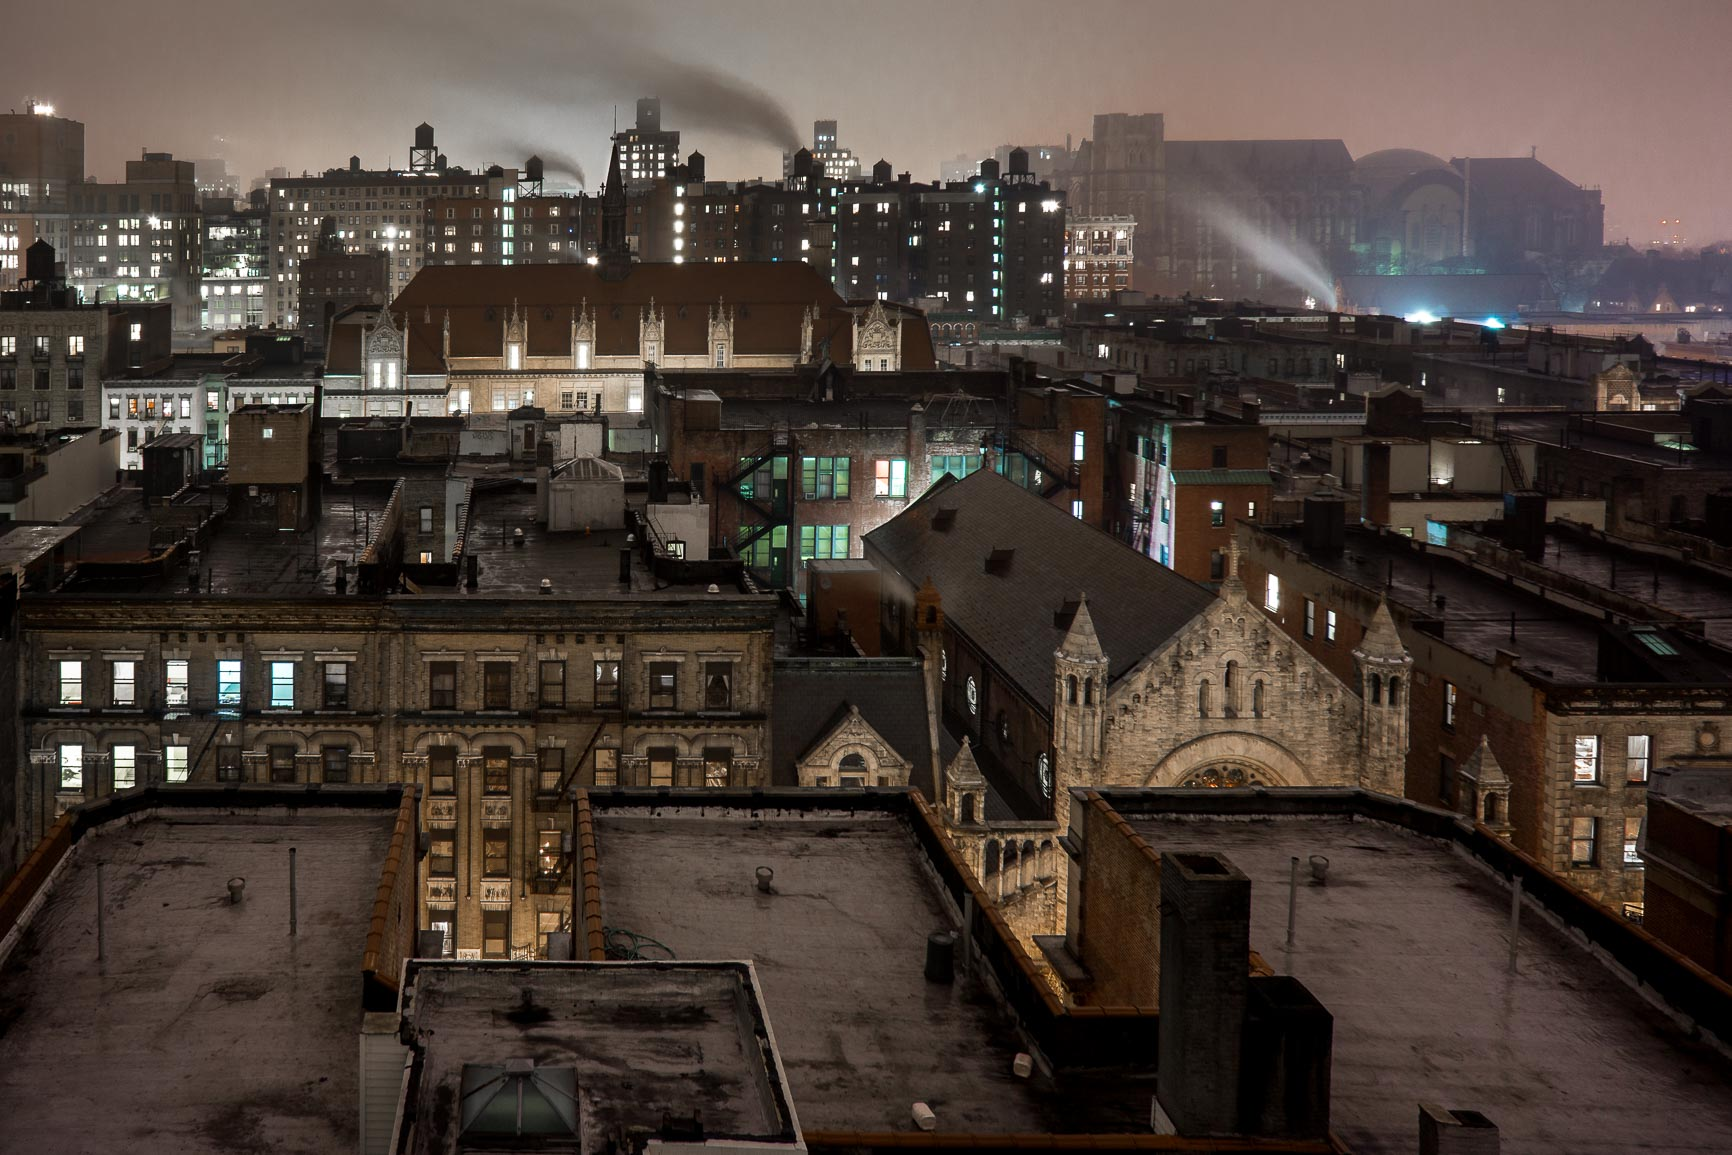 Misty Gotham Night